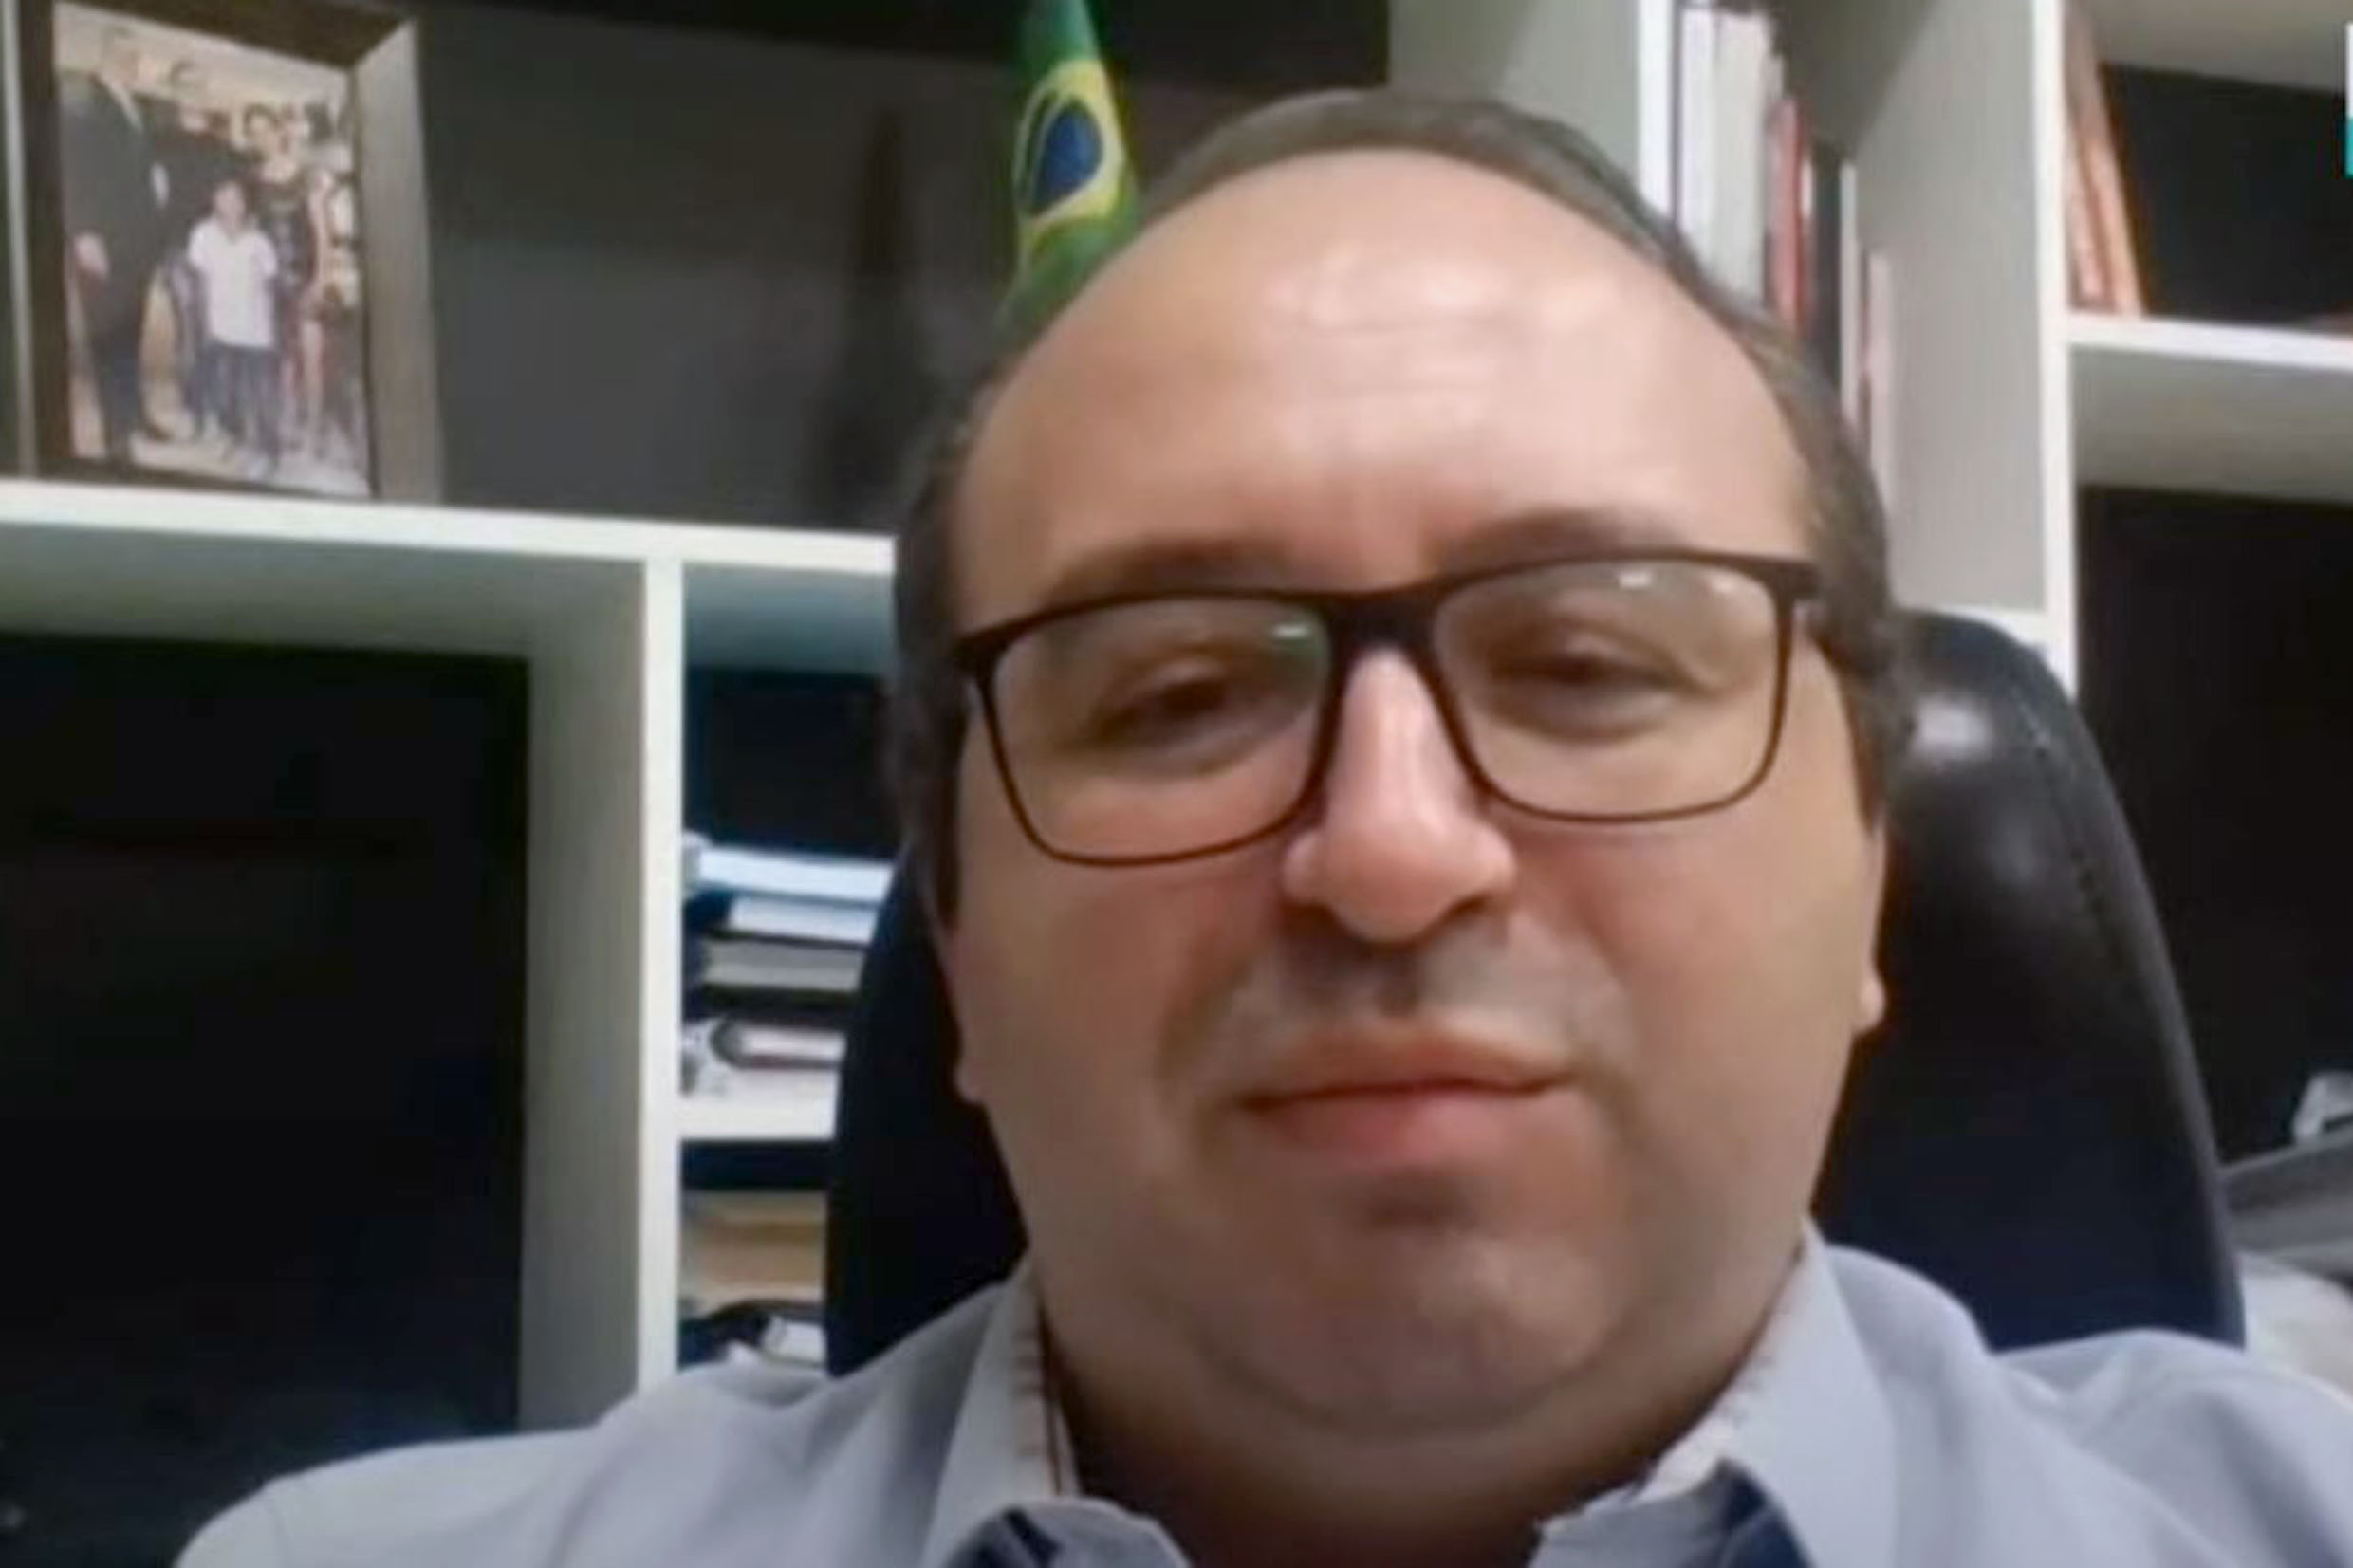 José Carlos<a style='float:right' href='https://www3.al.sp.gov.br/repositorio/noticia/N-06-2020/fg250443.jpg' target=_blank><img src='/_img/material-file-download-white.png' width='14px' alt='Clique para baixar a imagem'></a>